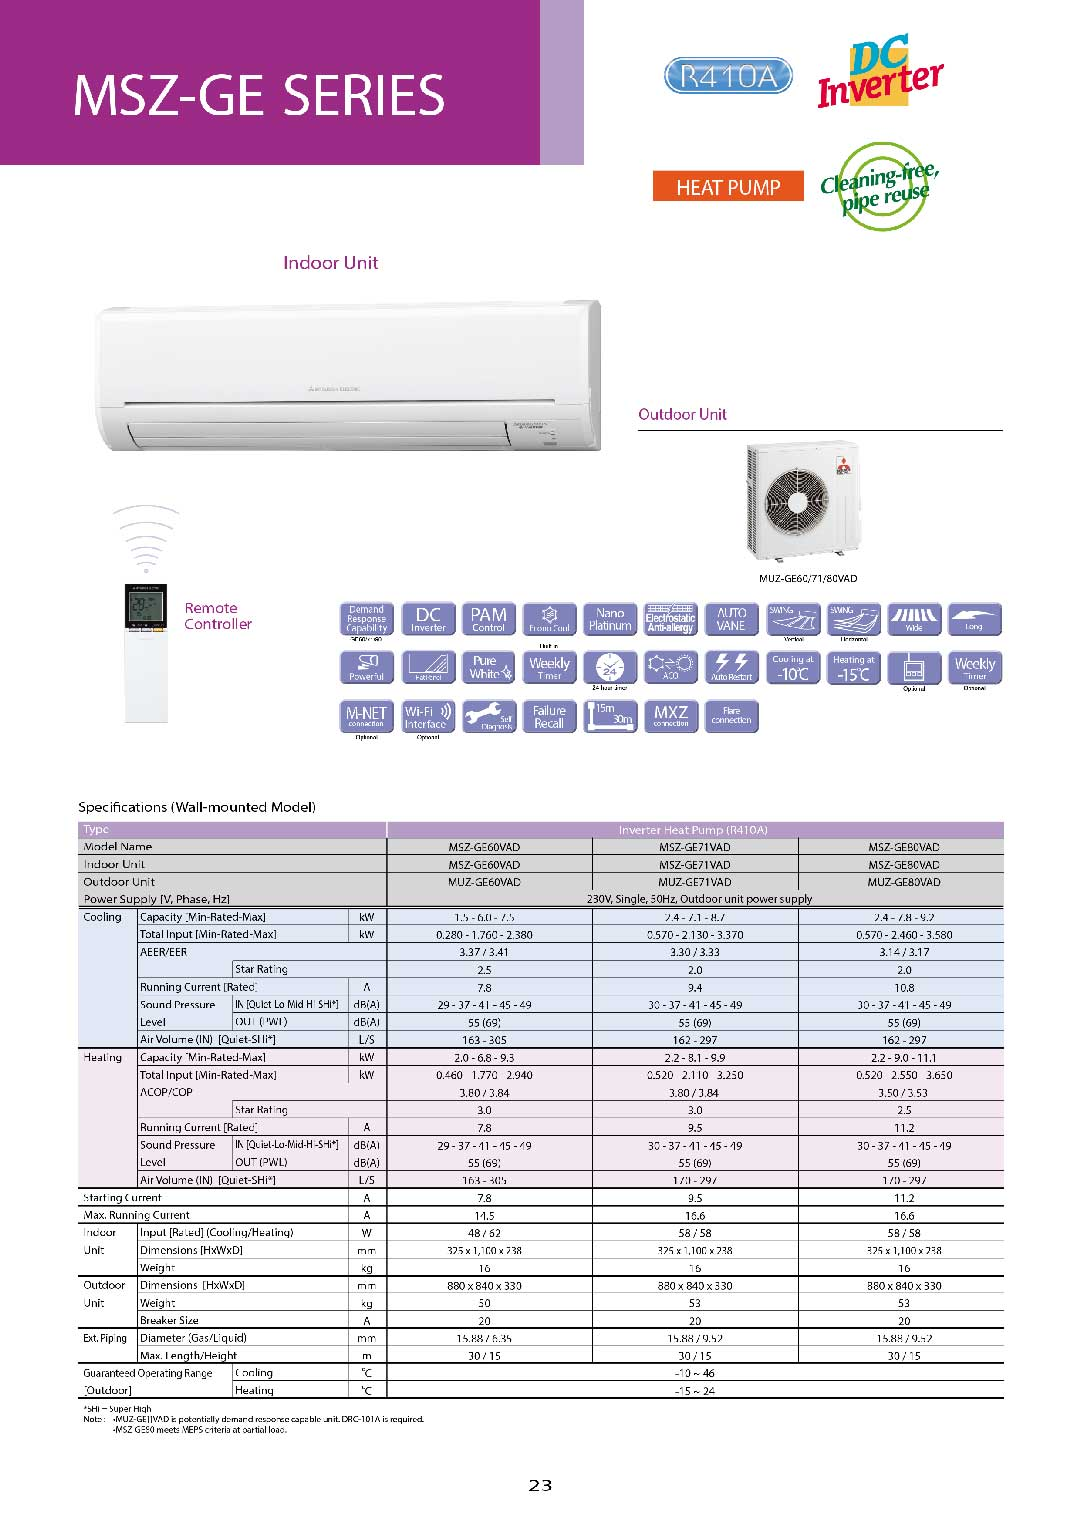 Mitsubishi-Air-Conditioning-Systems-24